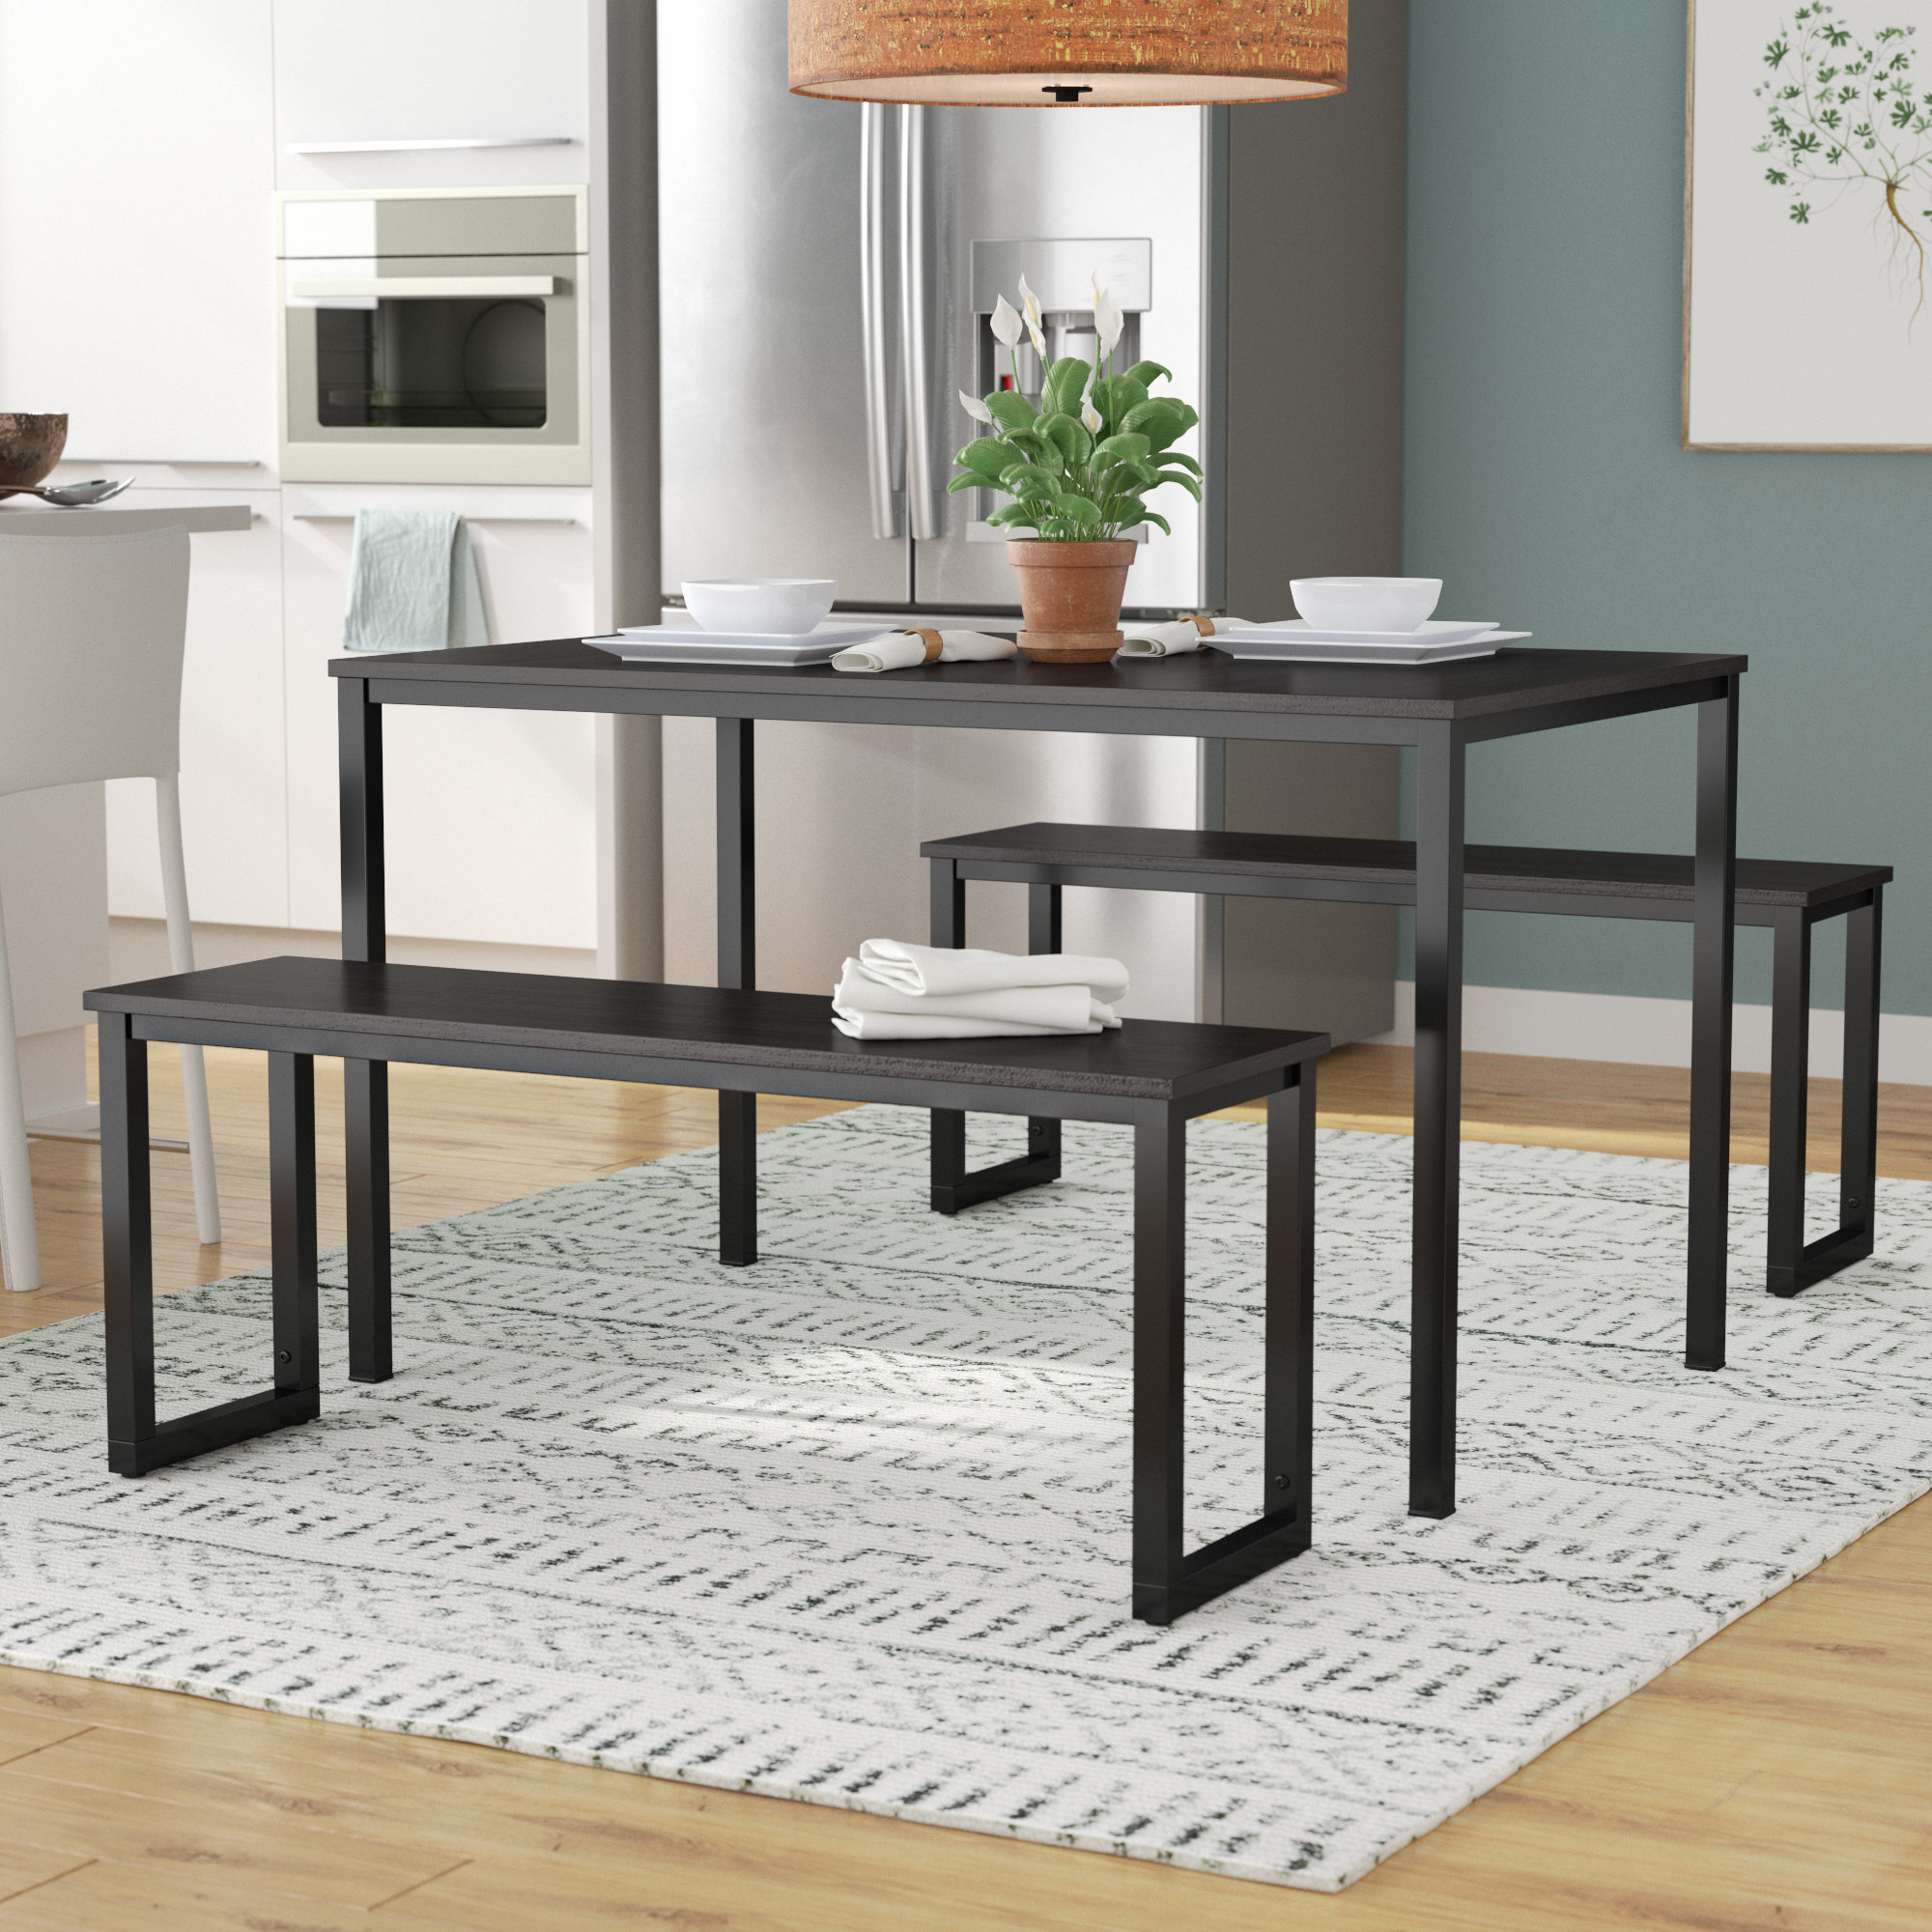 Frida 3 Piece Dining Table Set Within Best And Newest Frida 3 Piece Dining Table Sets (View 6 of 20)